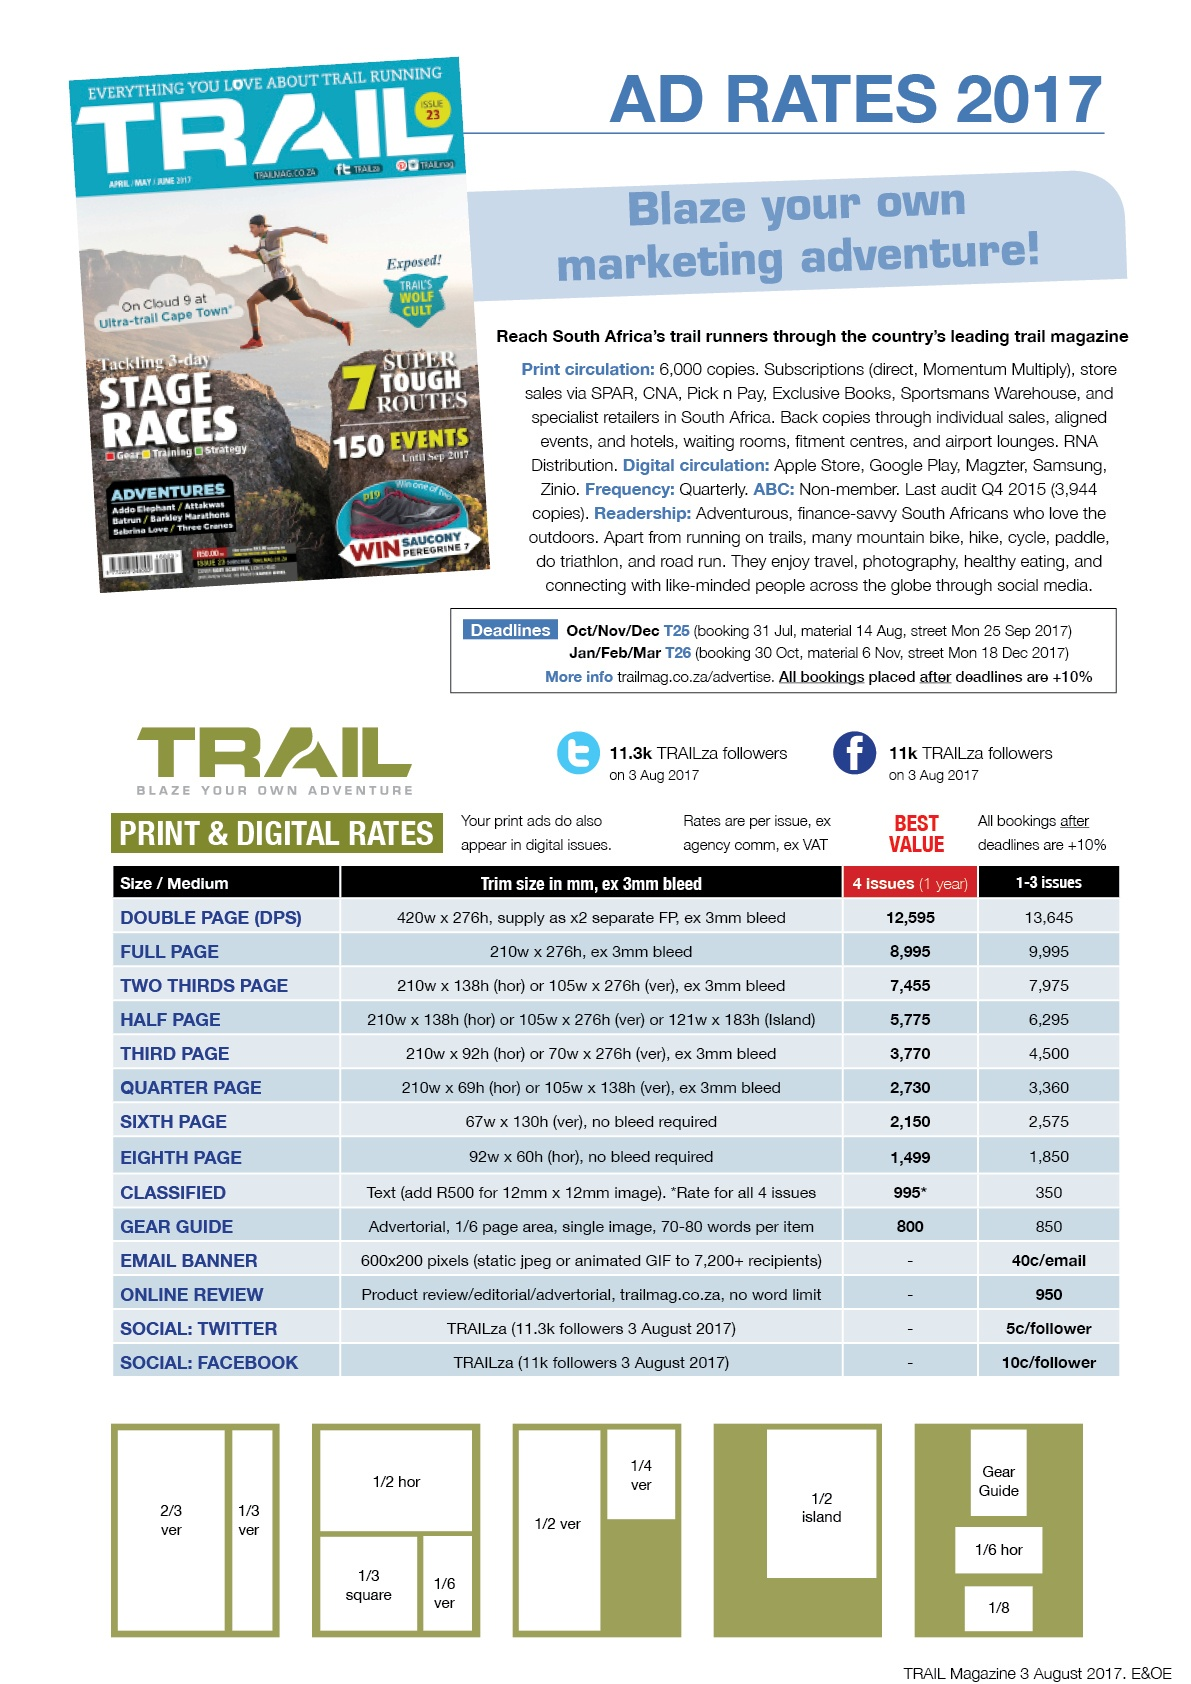 TRAIL magazine South Africa rates 2017 jpeg